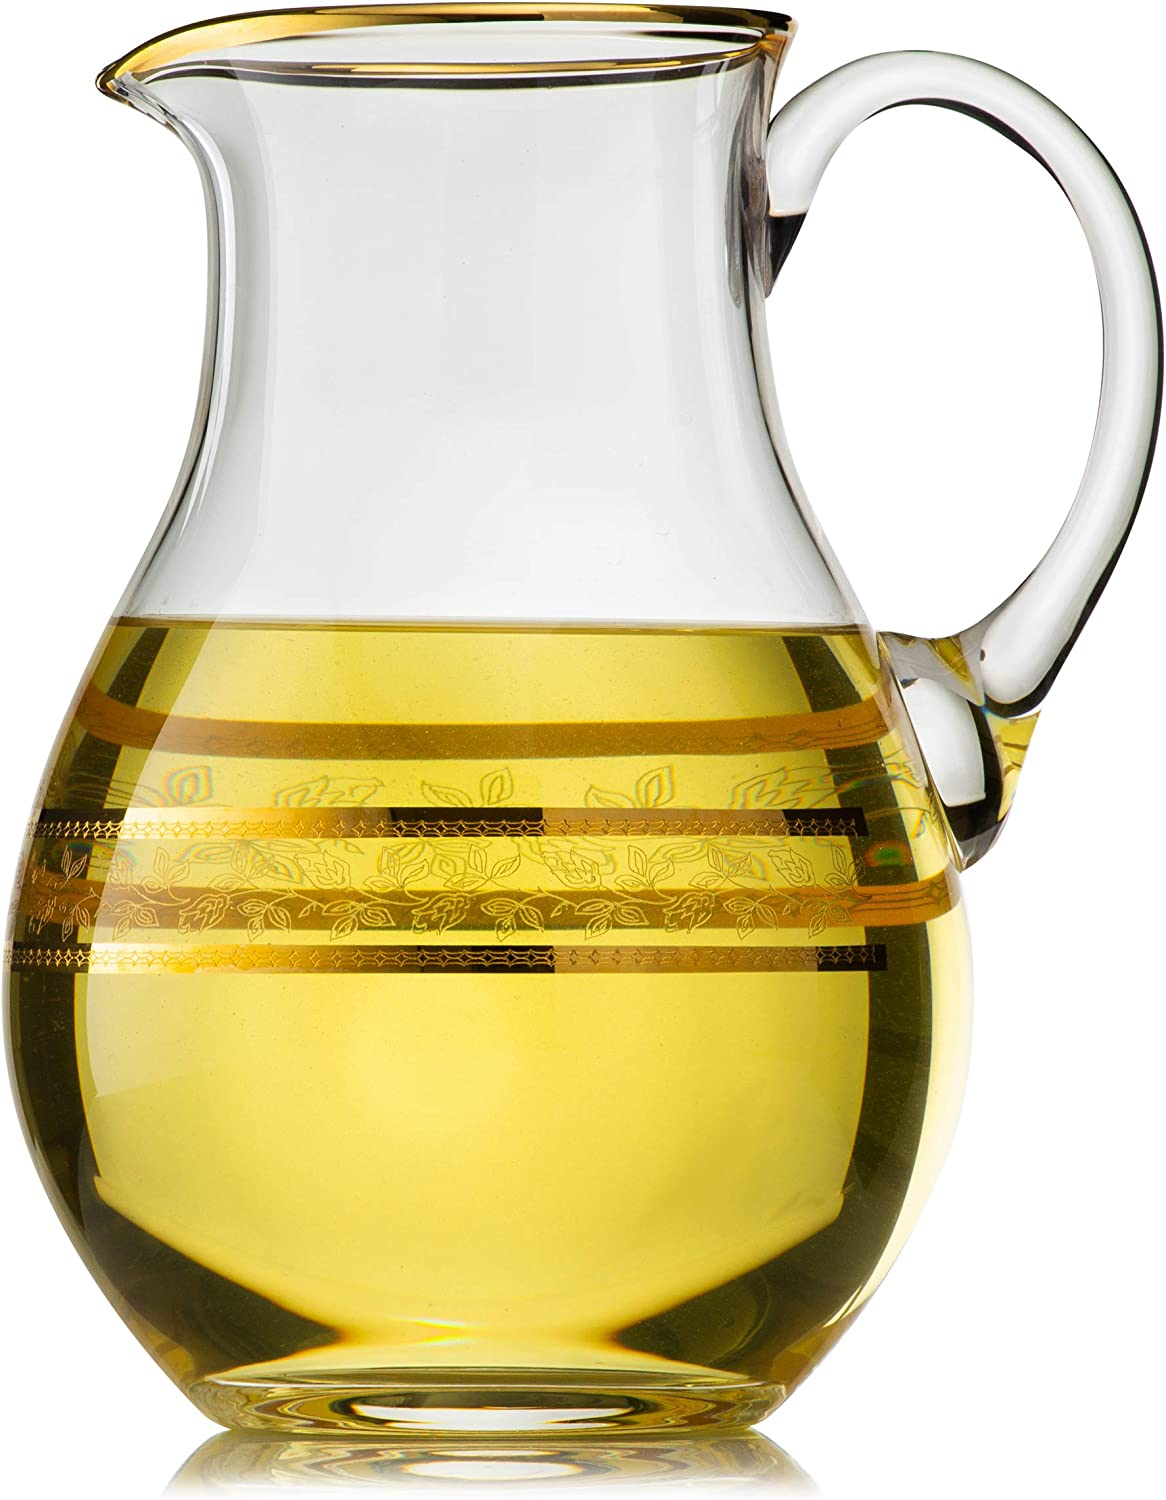 Large Crystal Glass Pitcher with gold Rim Decor   Classic, Elegant and Durable, Multi-Purpose Jar - Water, Mimosa, Sangria, Lemonade, Mix - Alexandra Collection - 50 Ounces 1500 Milliliters